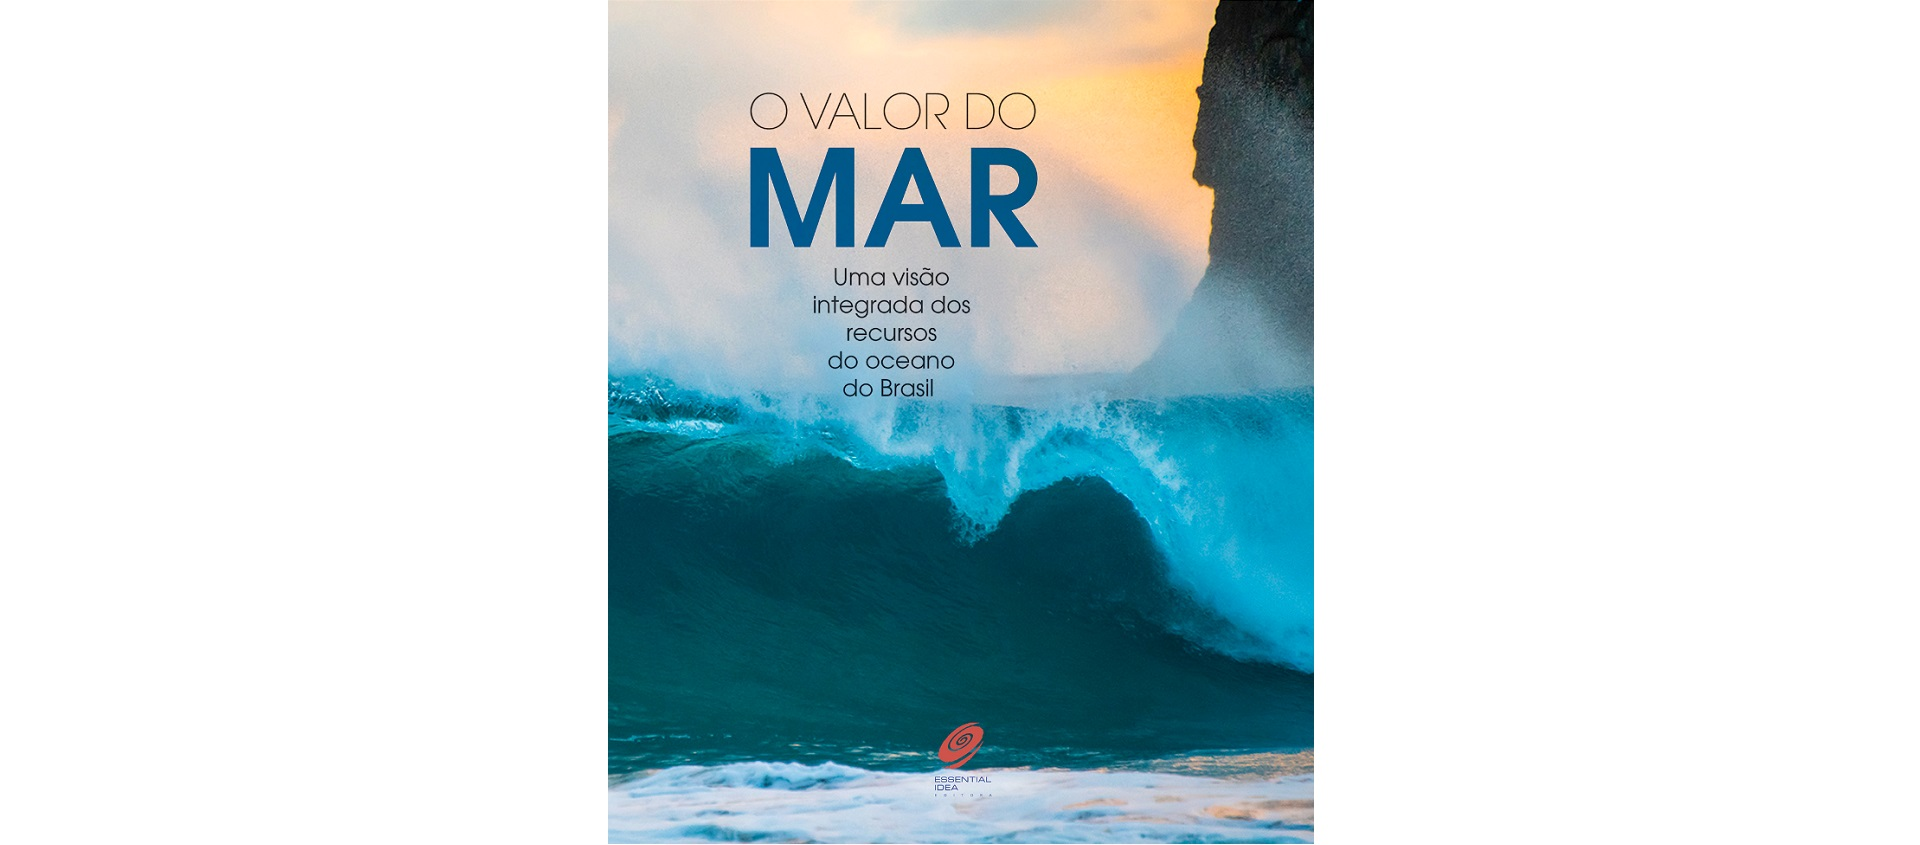 O Valor do Mar